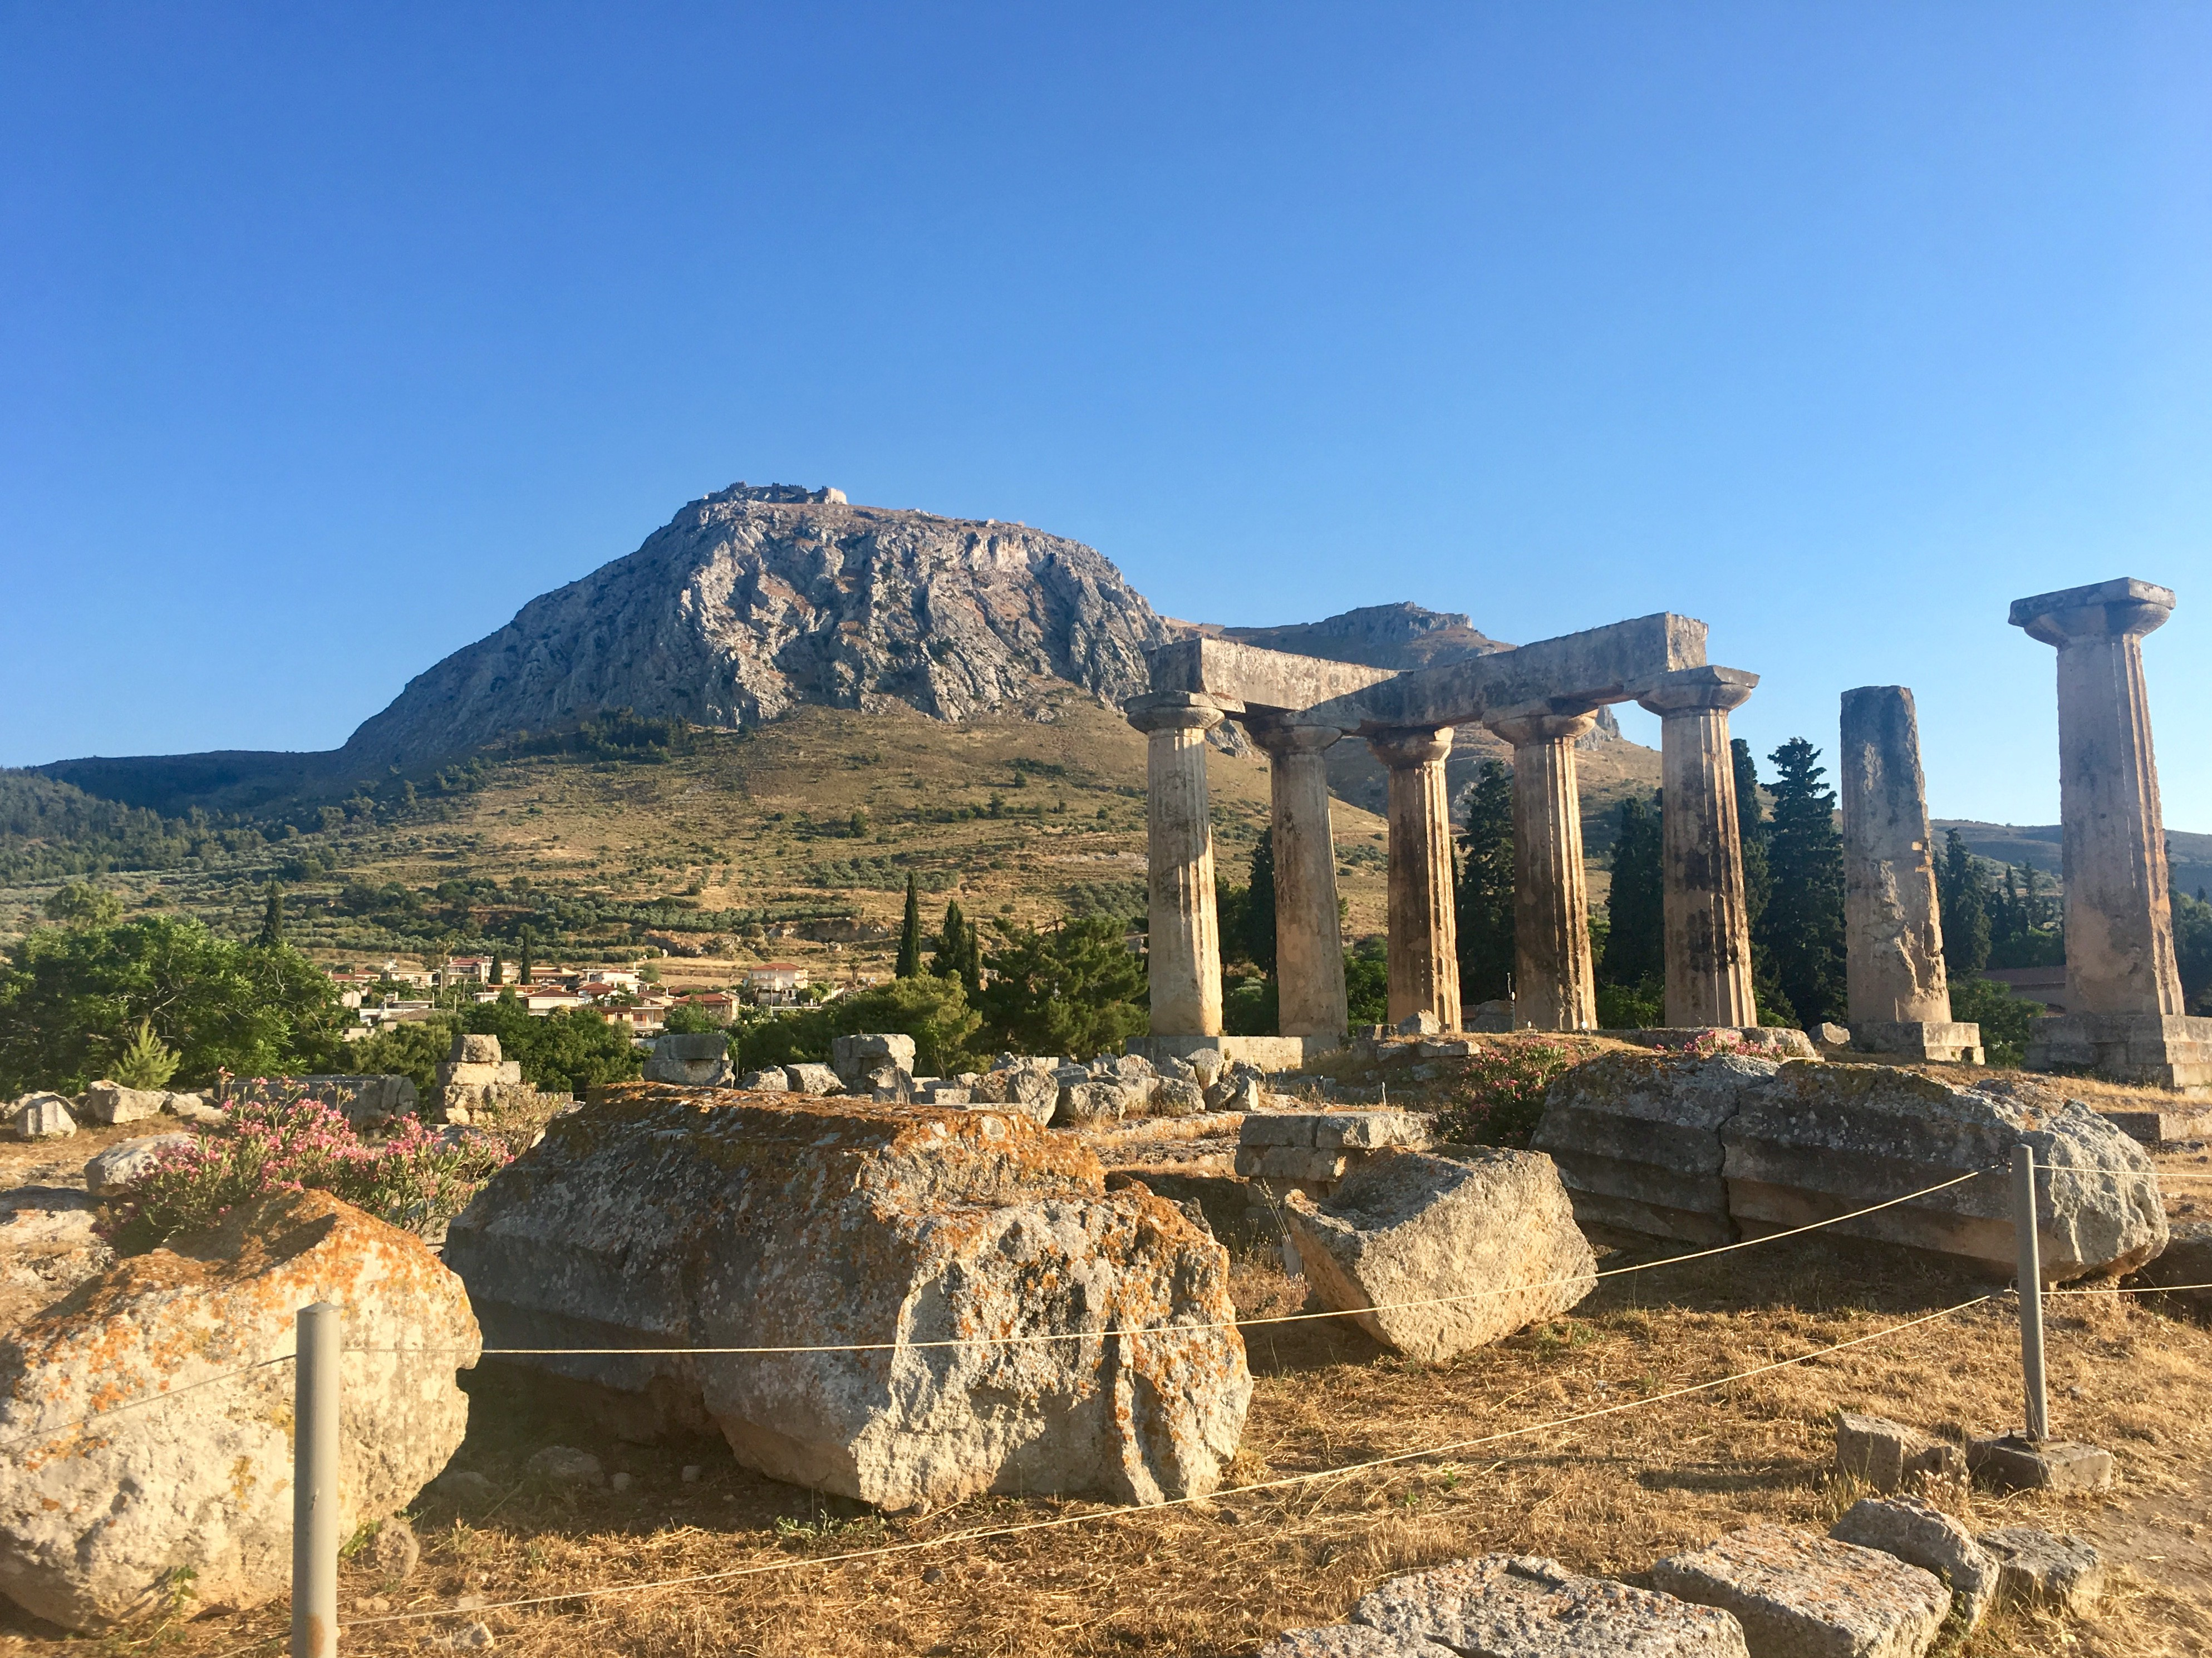 A shot of the Temple of Apollo in Corinth, with the mountain Acrocorinth behind it